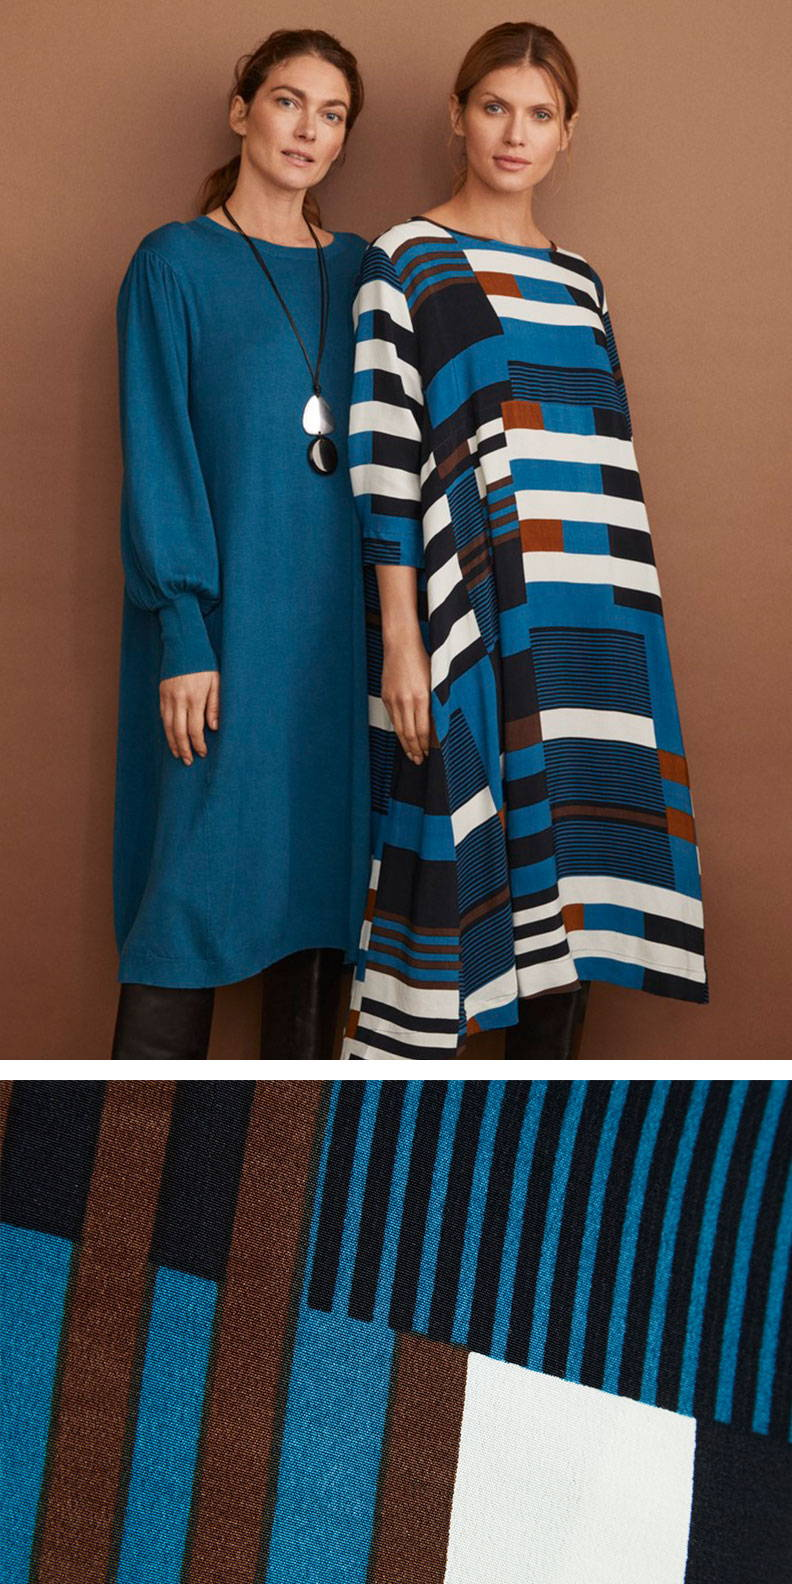 Pictured Together, the Nabia and Nolina Dress   Masai Copenhagen